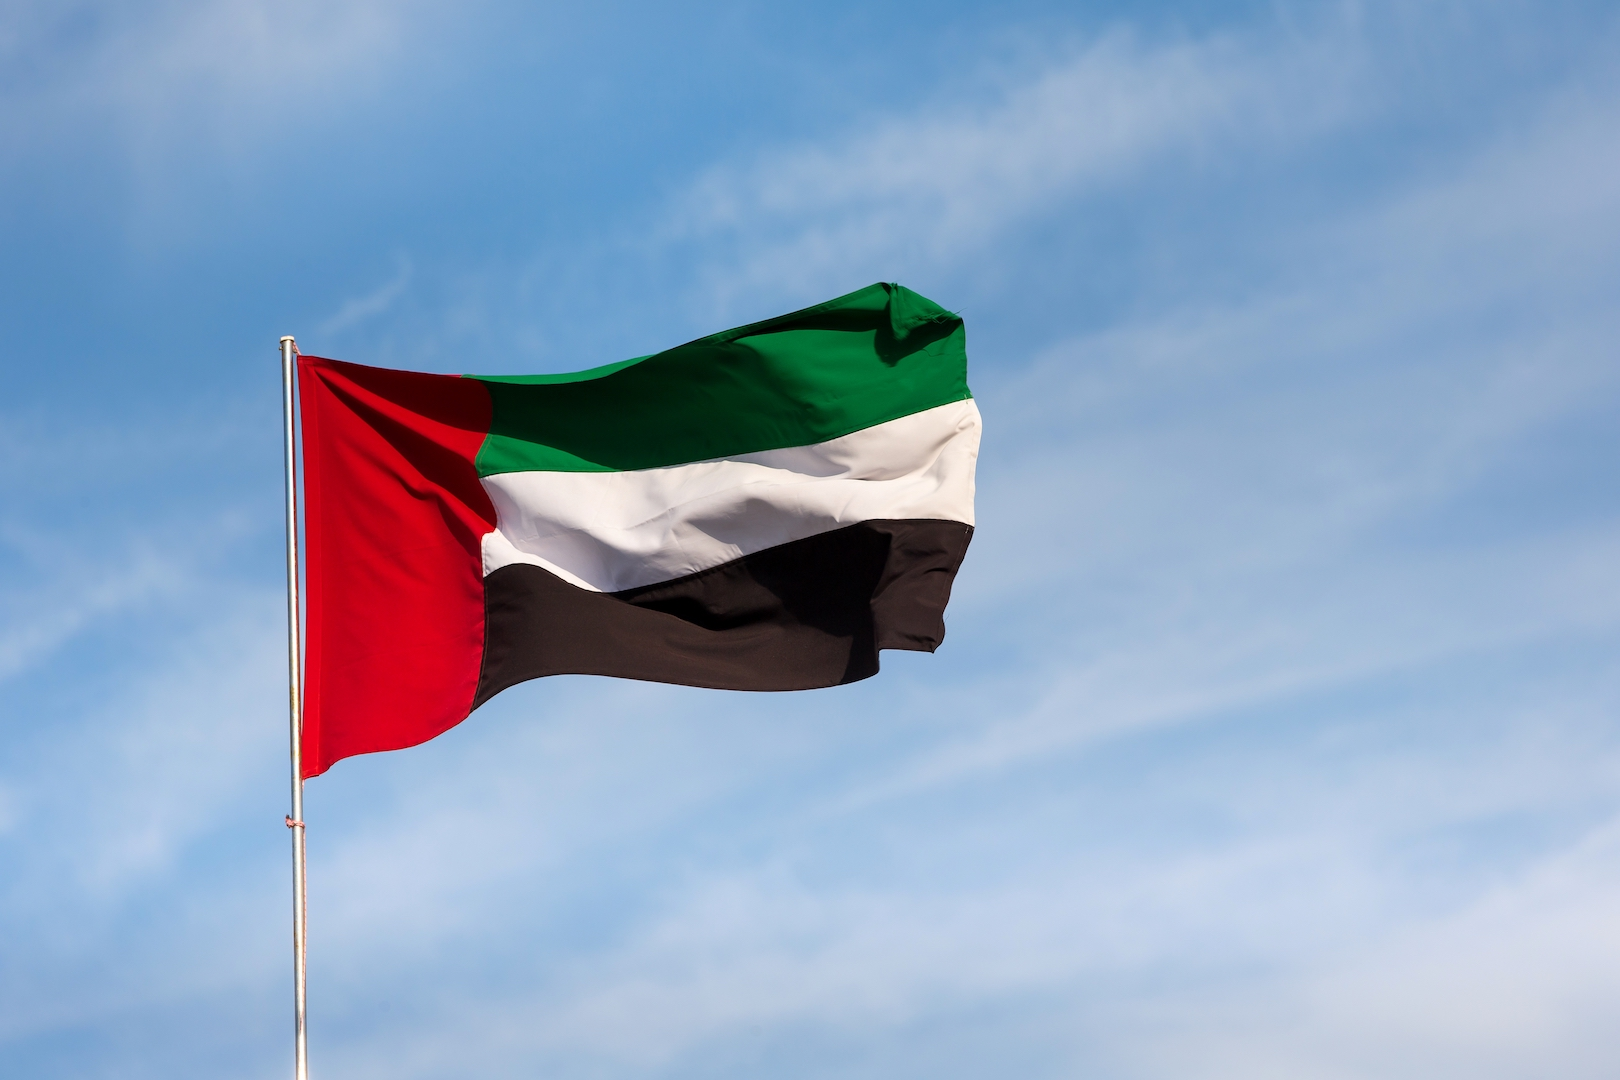 UAE GDP is projected to grow by 2.4% in 2021, 3.8% in 2022